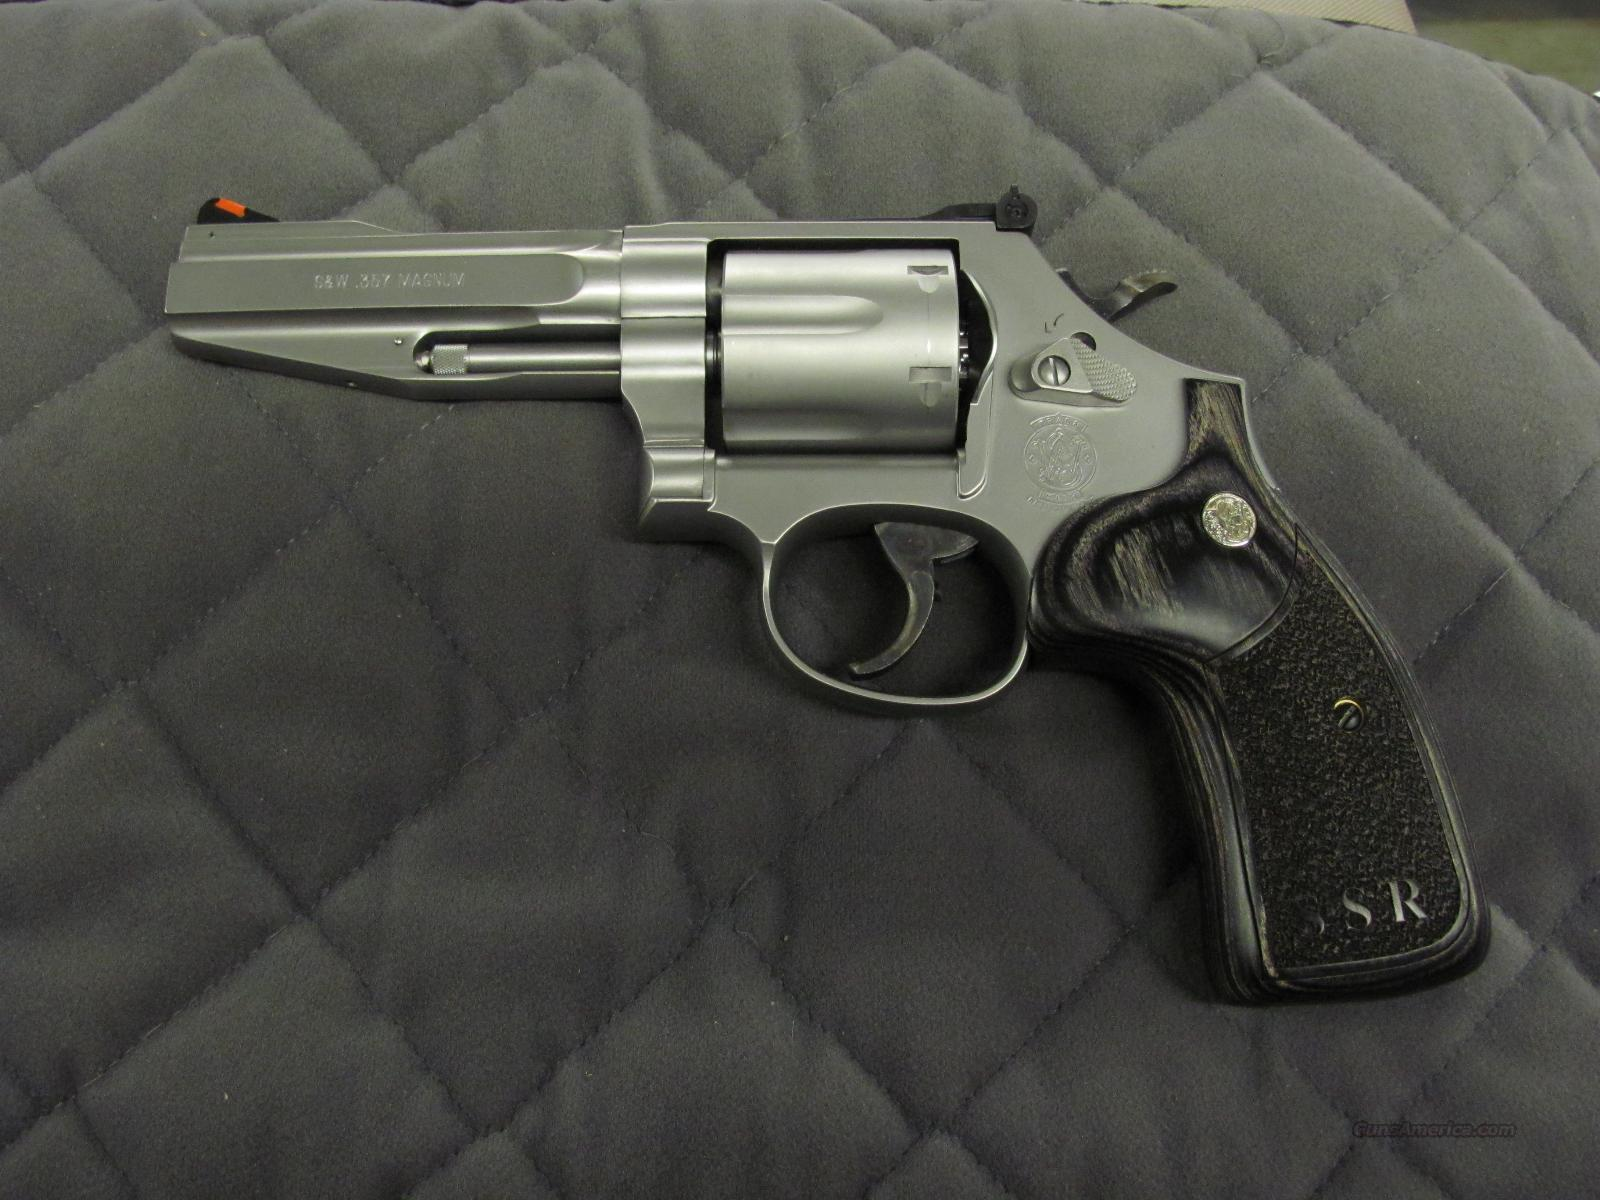 Smith & Wesson Model 686 SSR Pro Series 357 Mag... for sale